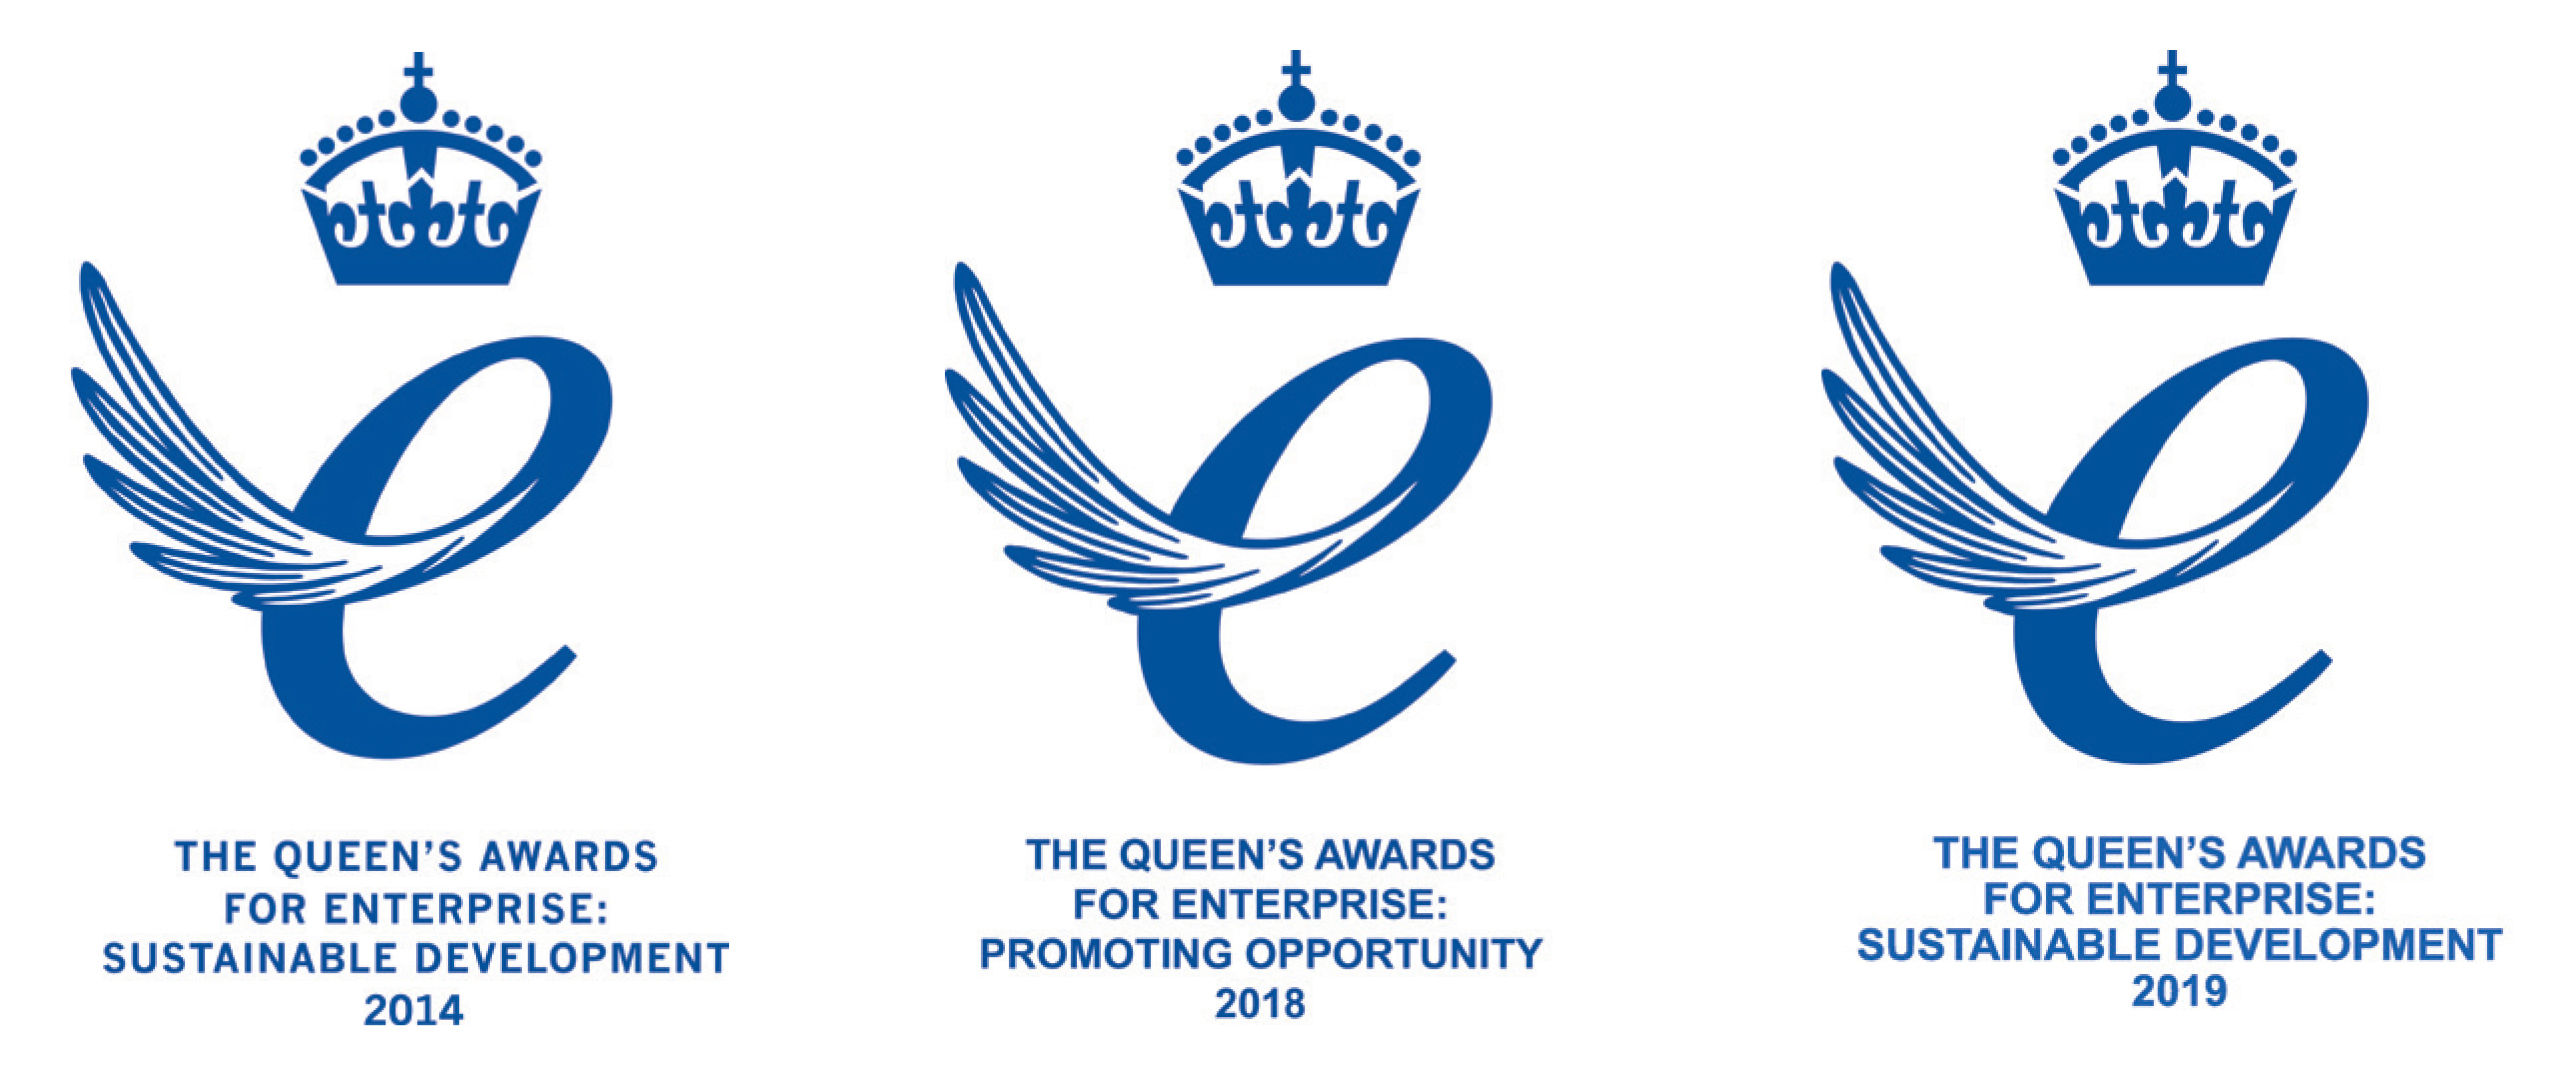 Queen's Awards Logo's.jpg